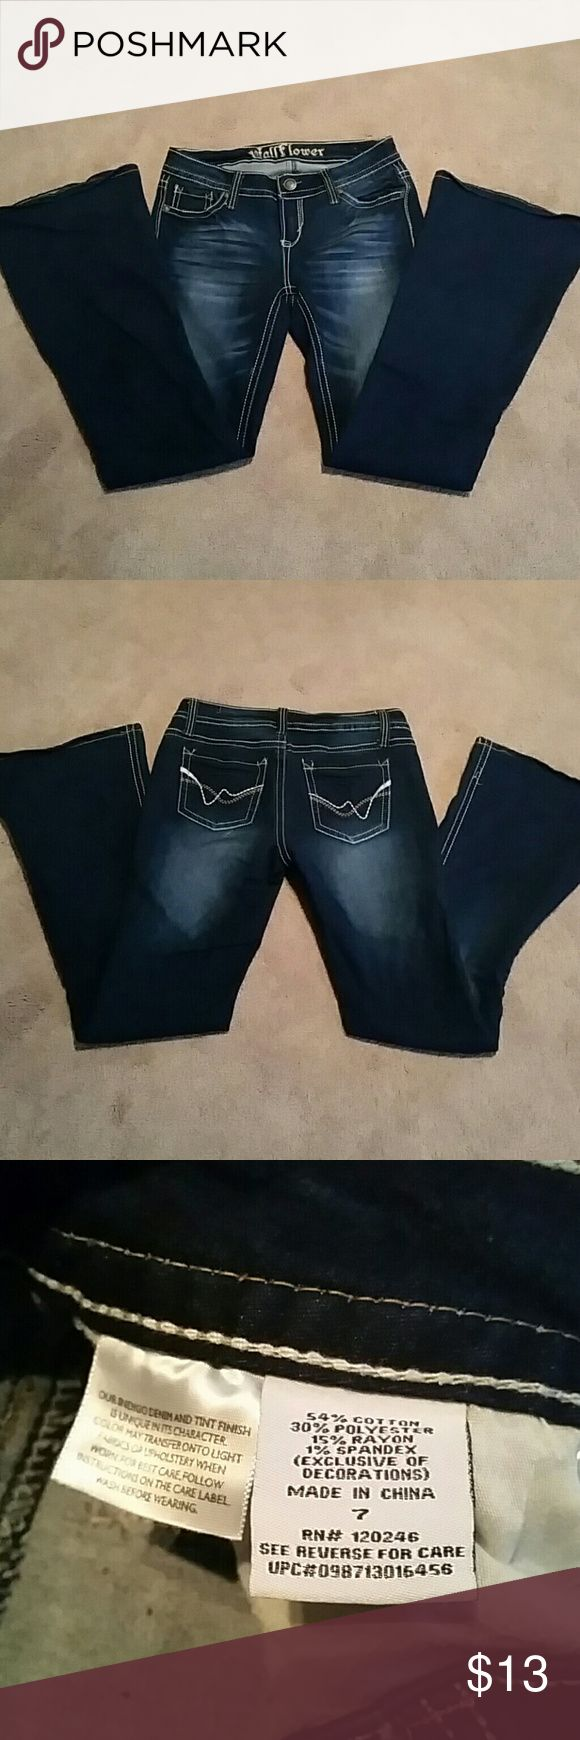 Wallflower jeans Perfect condition never worn Wallflower Jeans